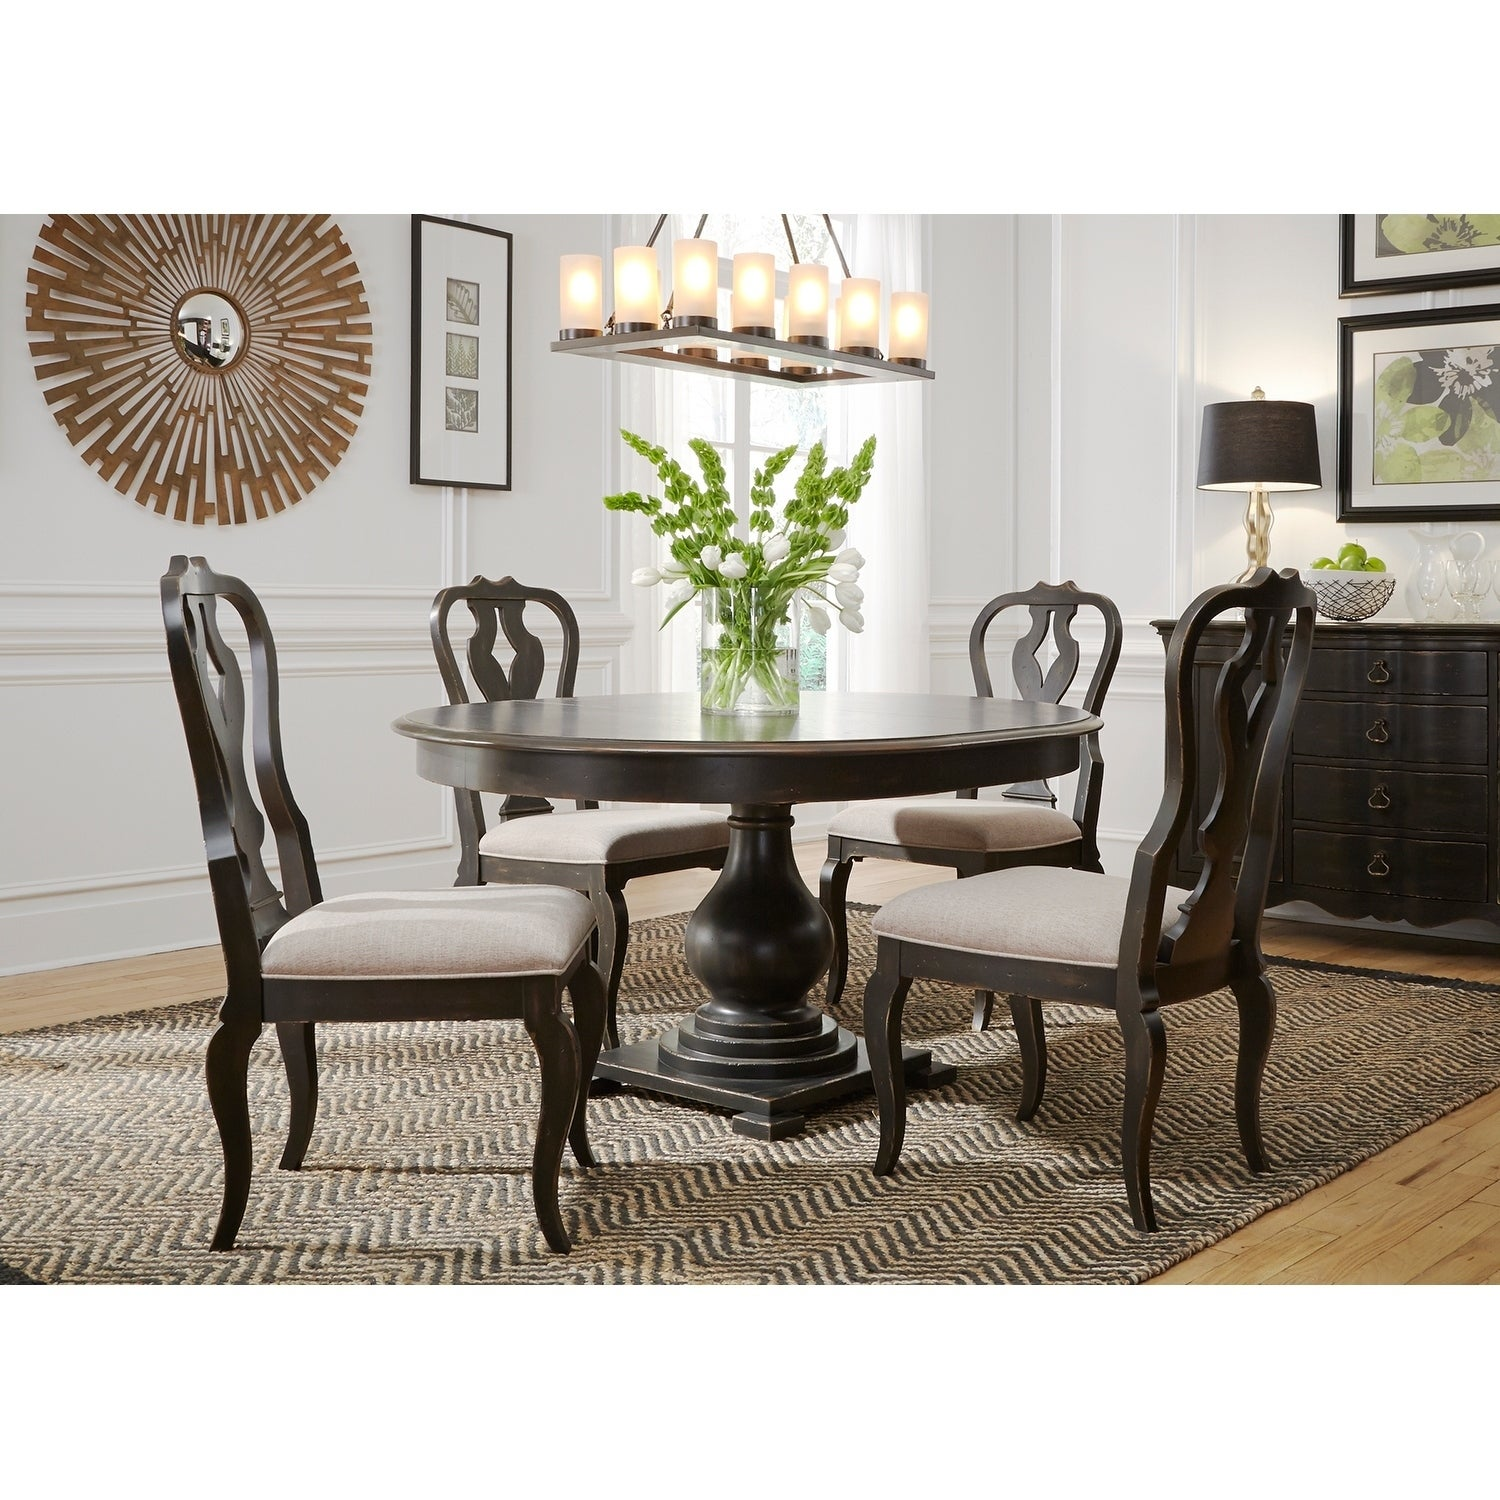 Liberty Chesapeake Wire Brushed Antique Black 5 Piece Pedestal Table Set Free Shipping Today 24718626